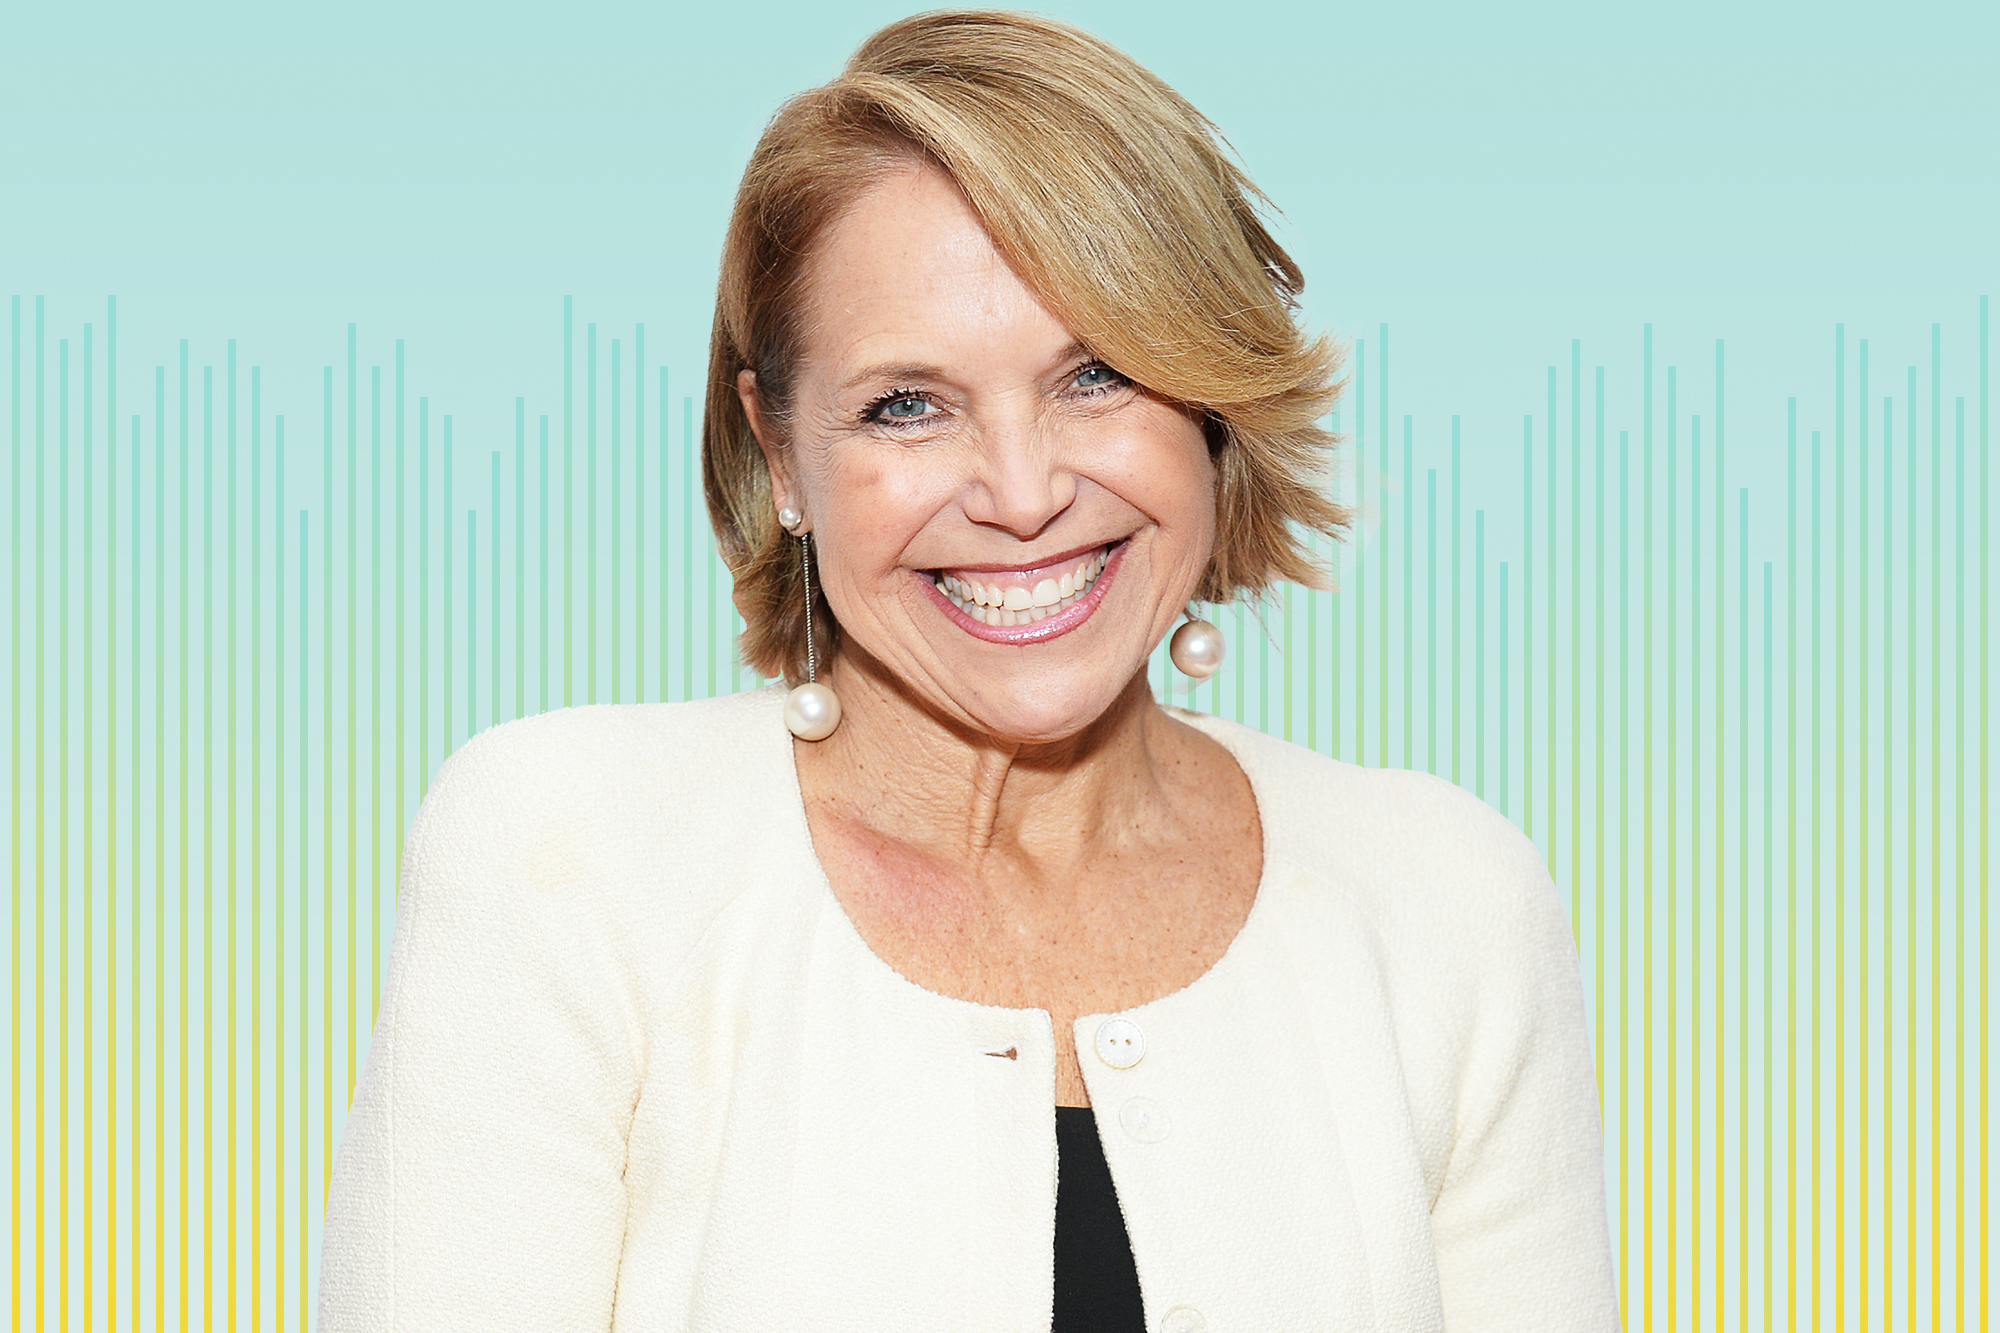 Katie Couric on a designed background